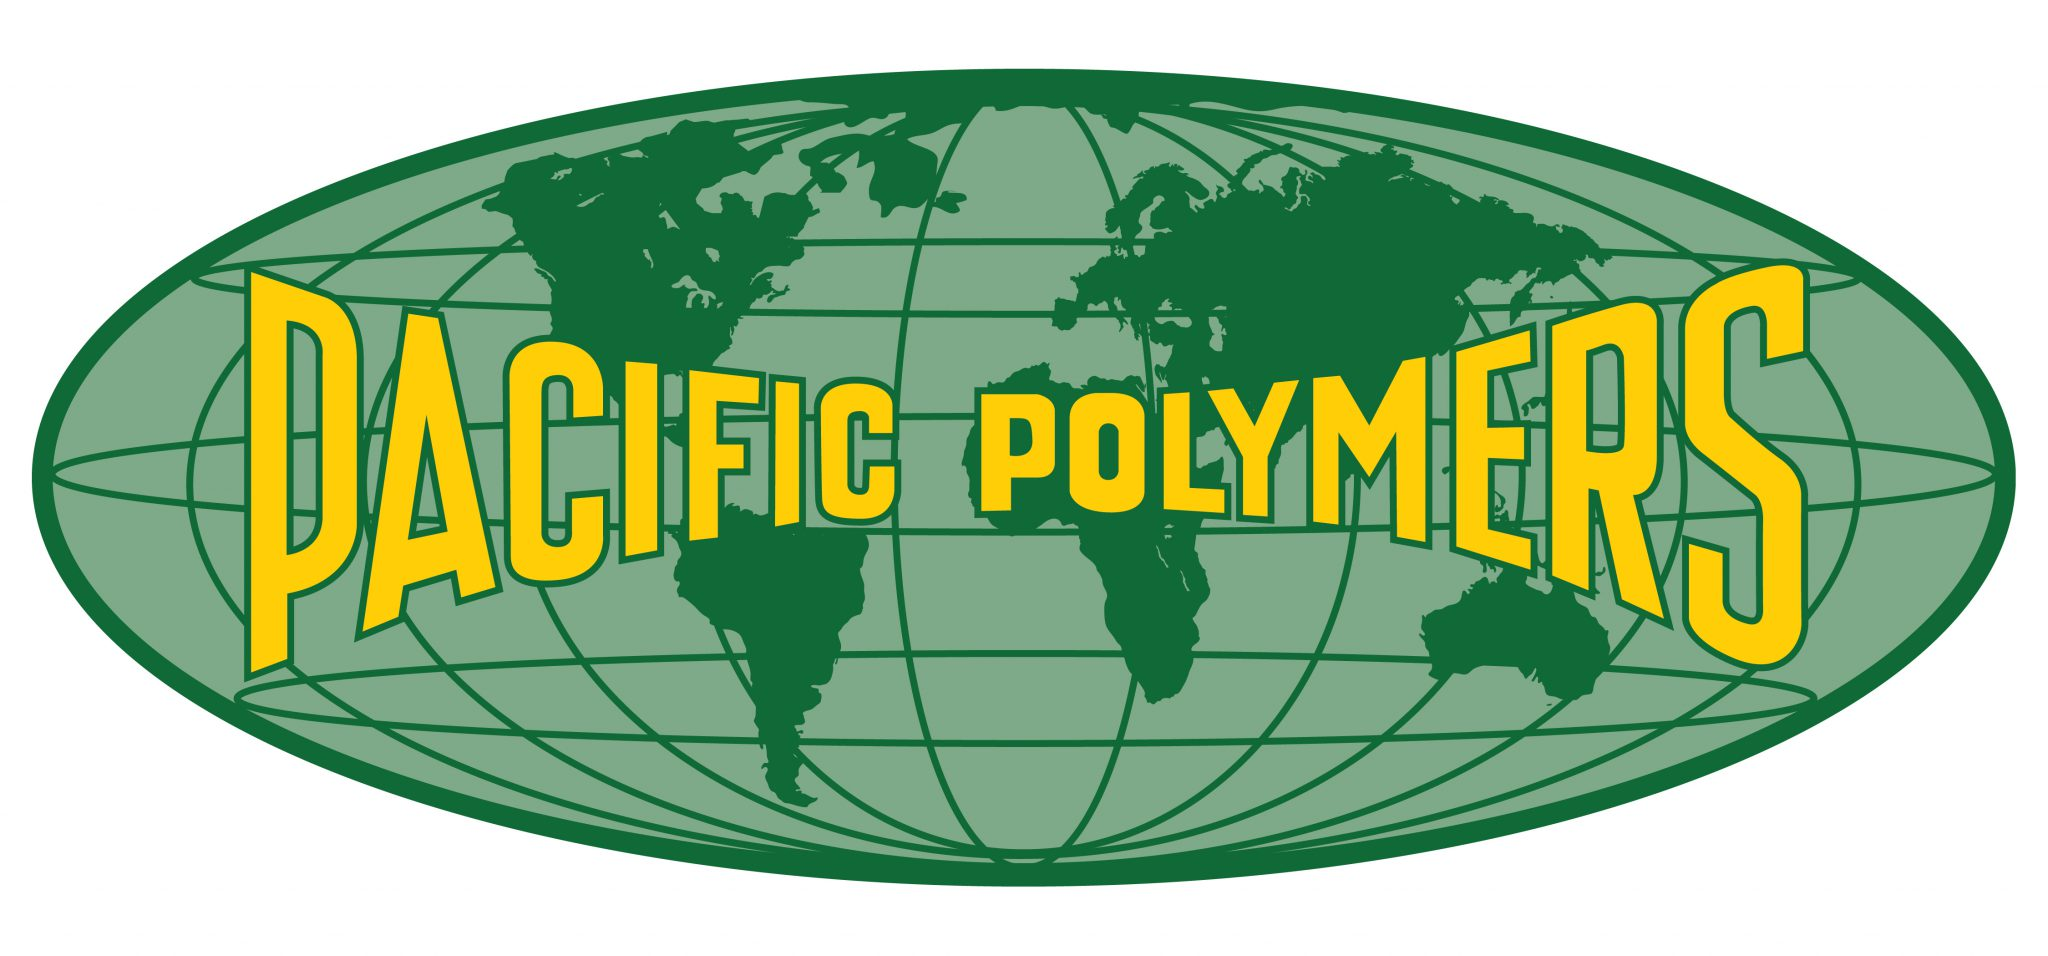 Pacific Polymers aka Pac Poly